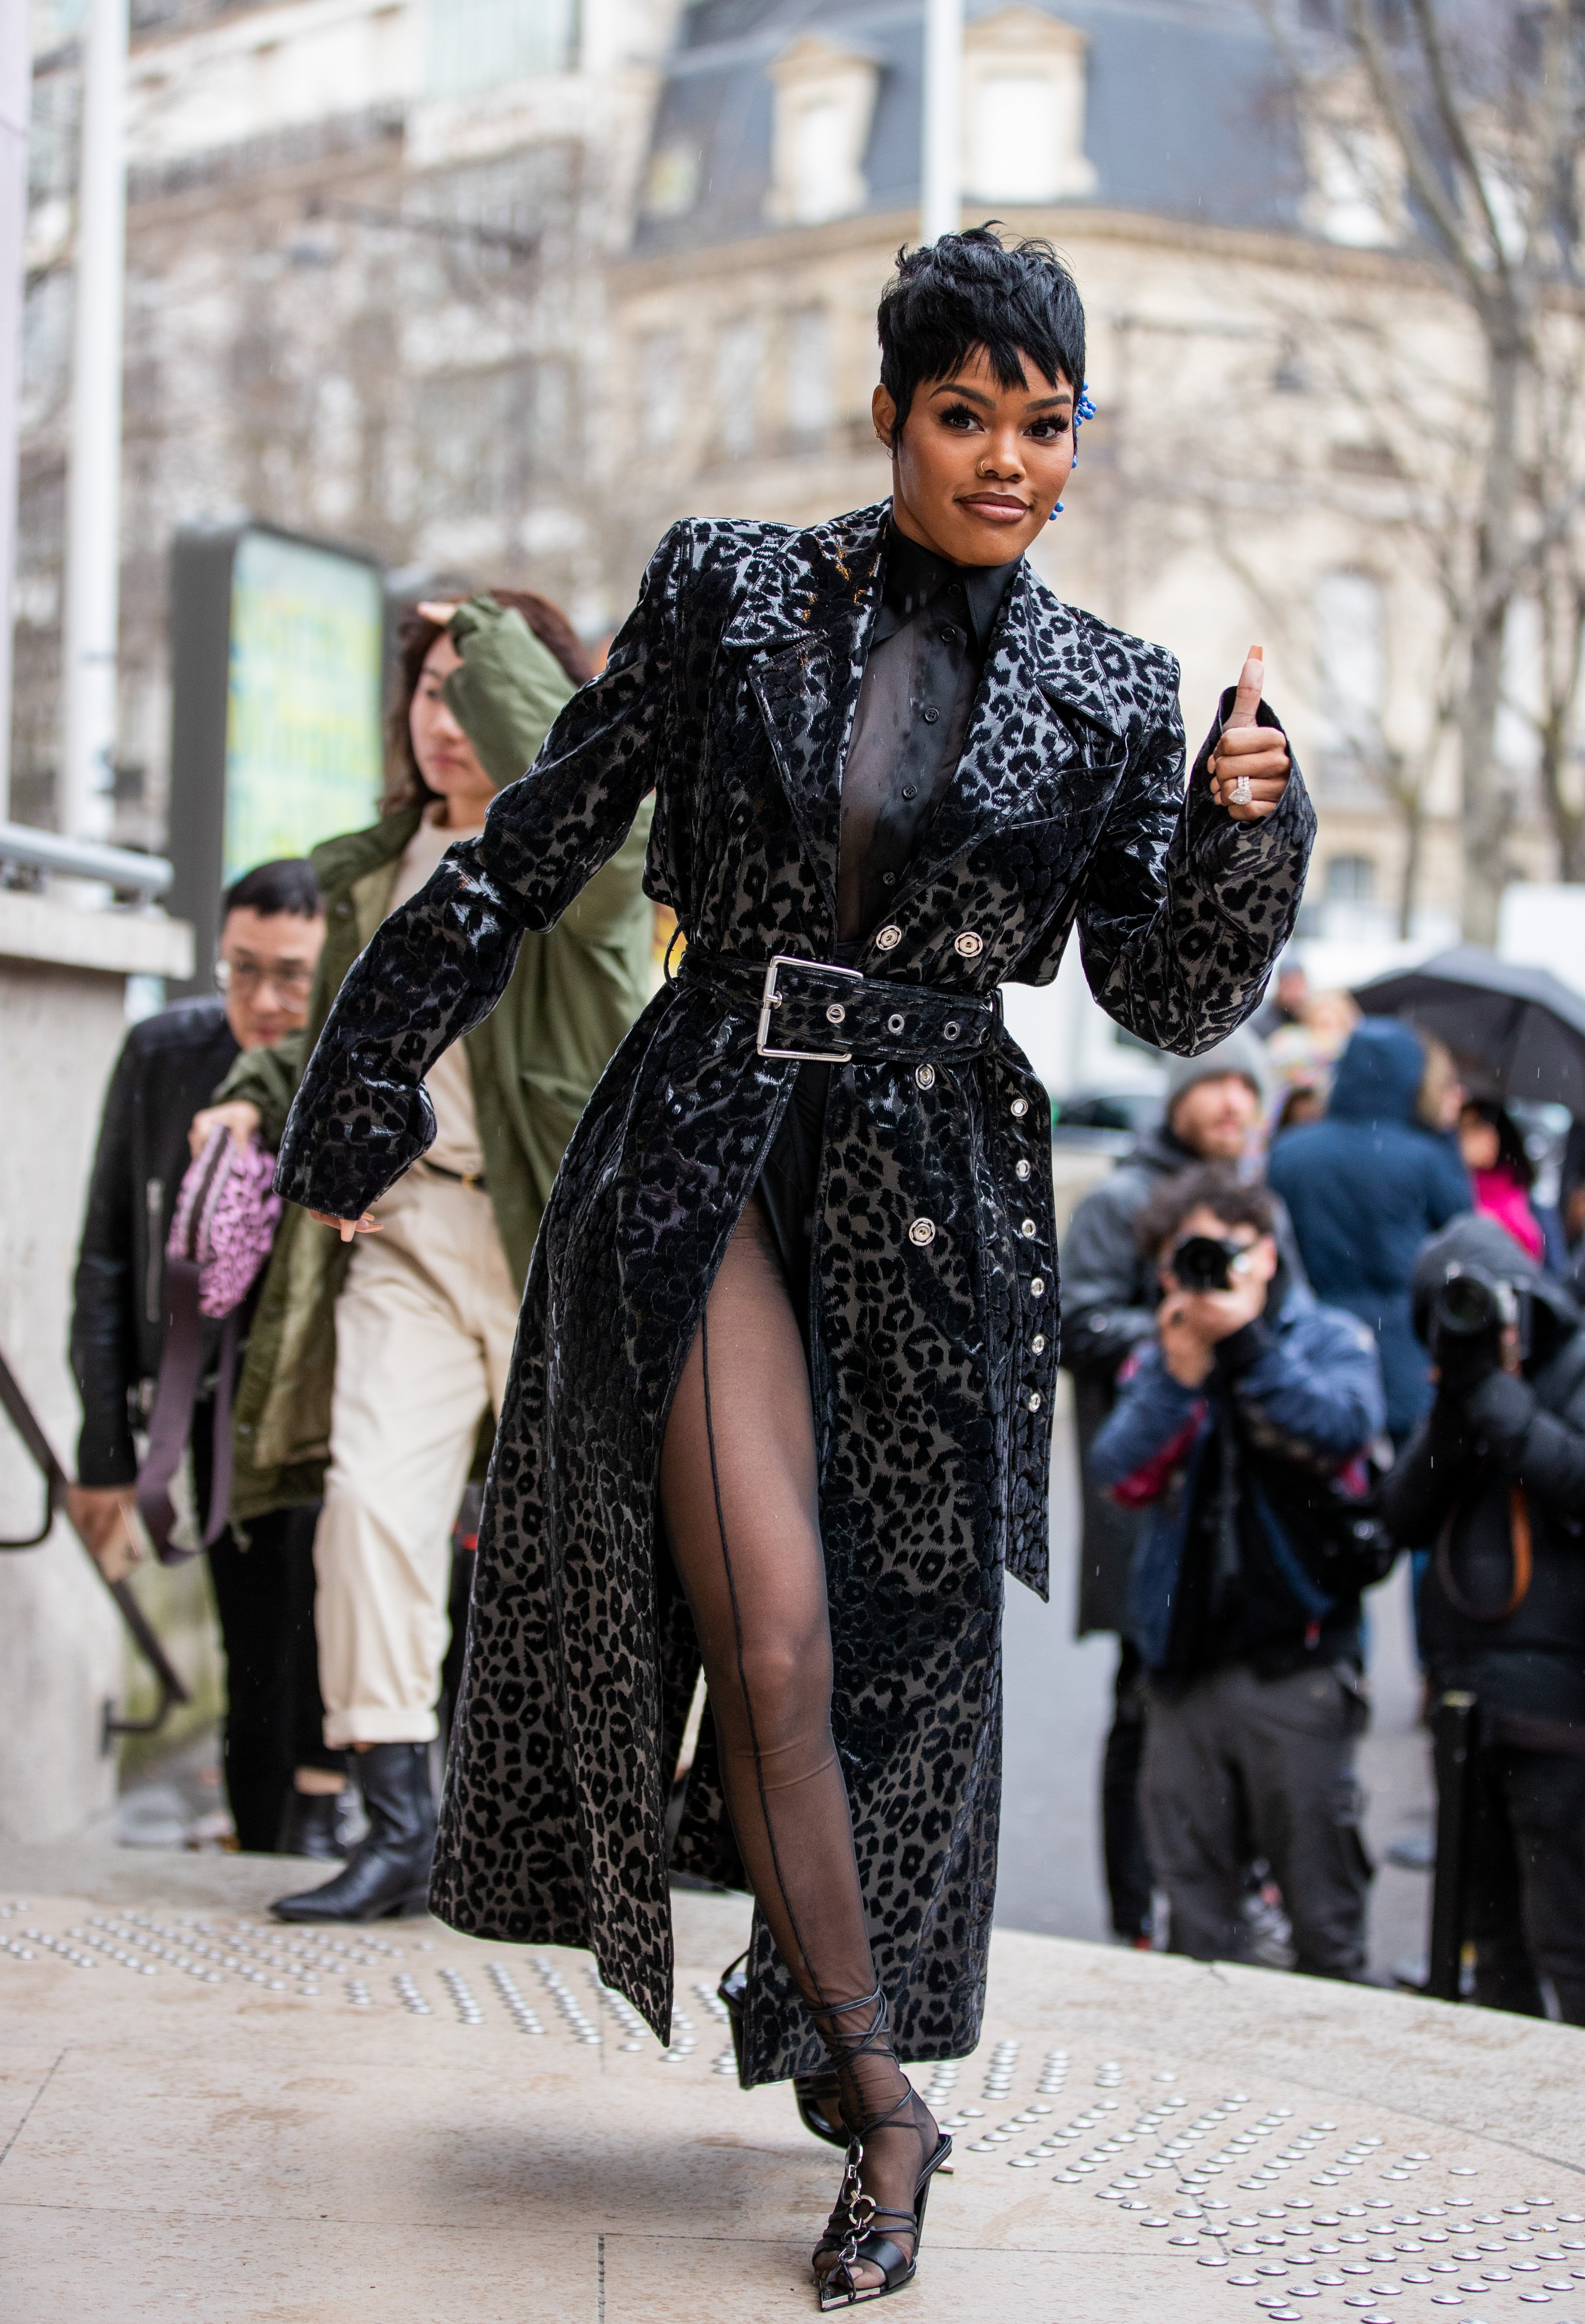 Teyana Taylor during Paris Fashion Week 2020/2021 on February 26, 2020 in Paris, France. |Source: Getty Images